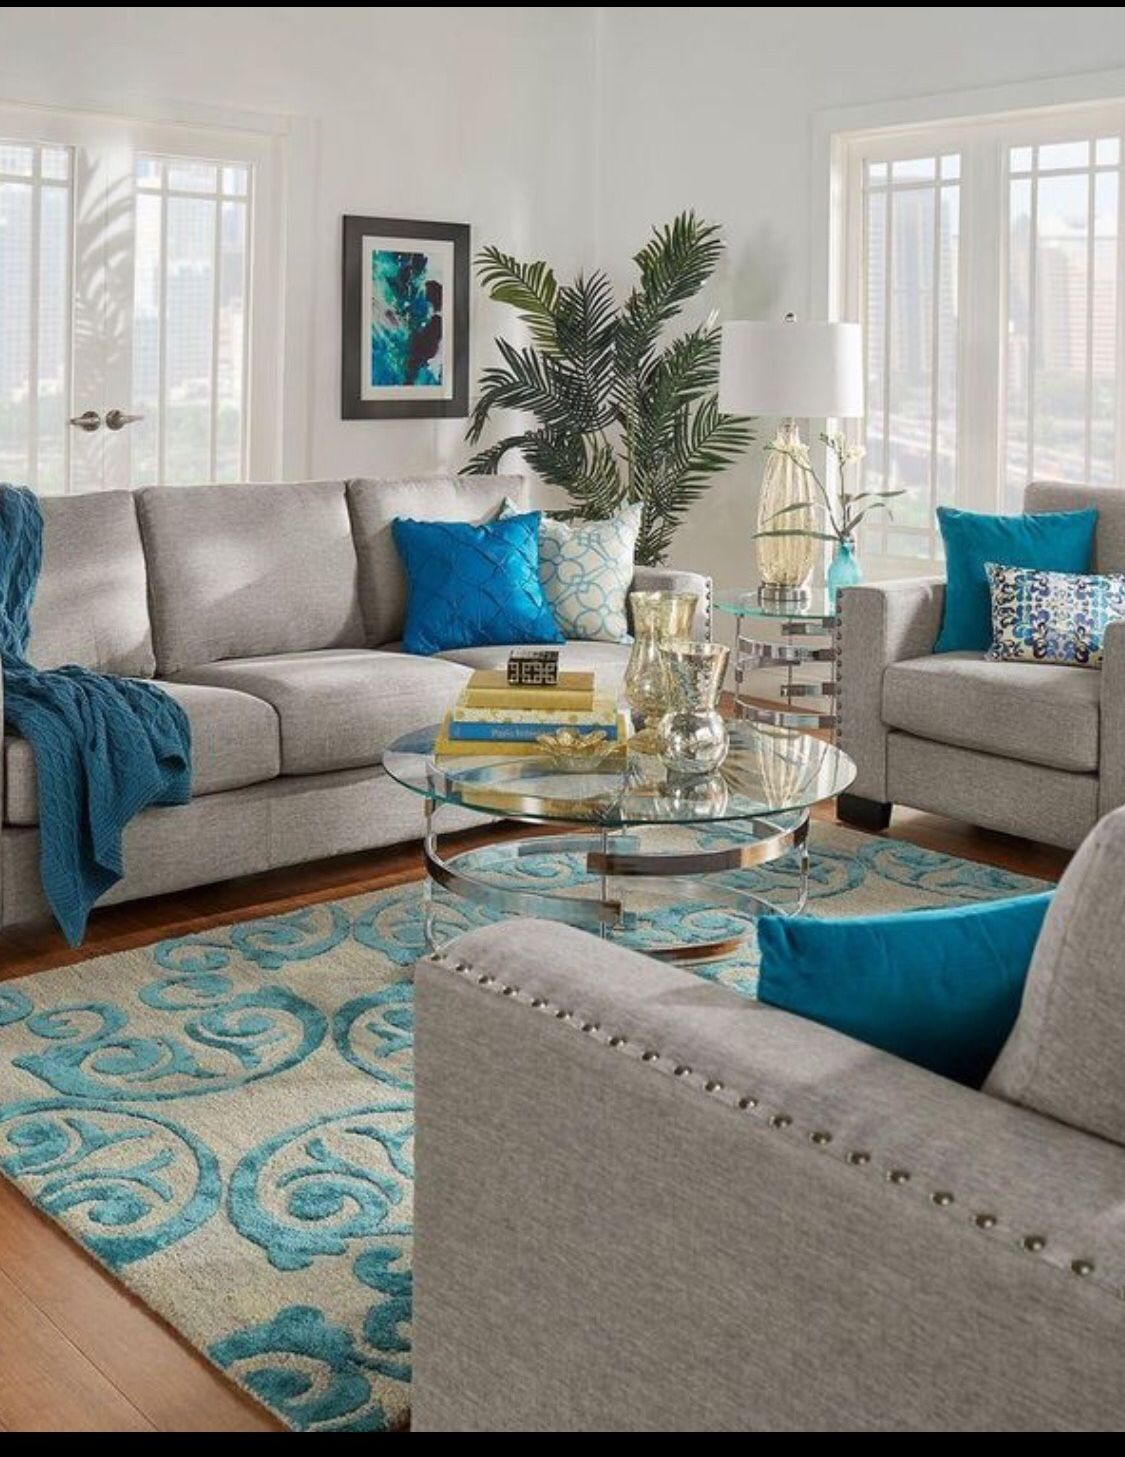 Turquoise living room decor image by Sylvia Sanchez on ...